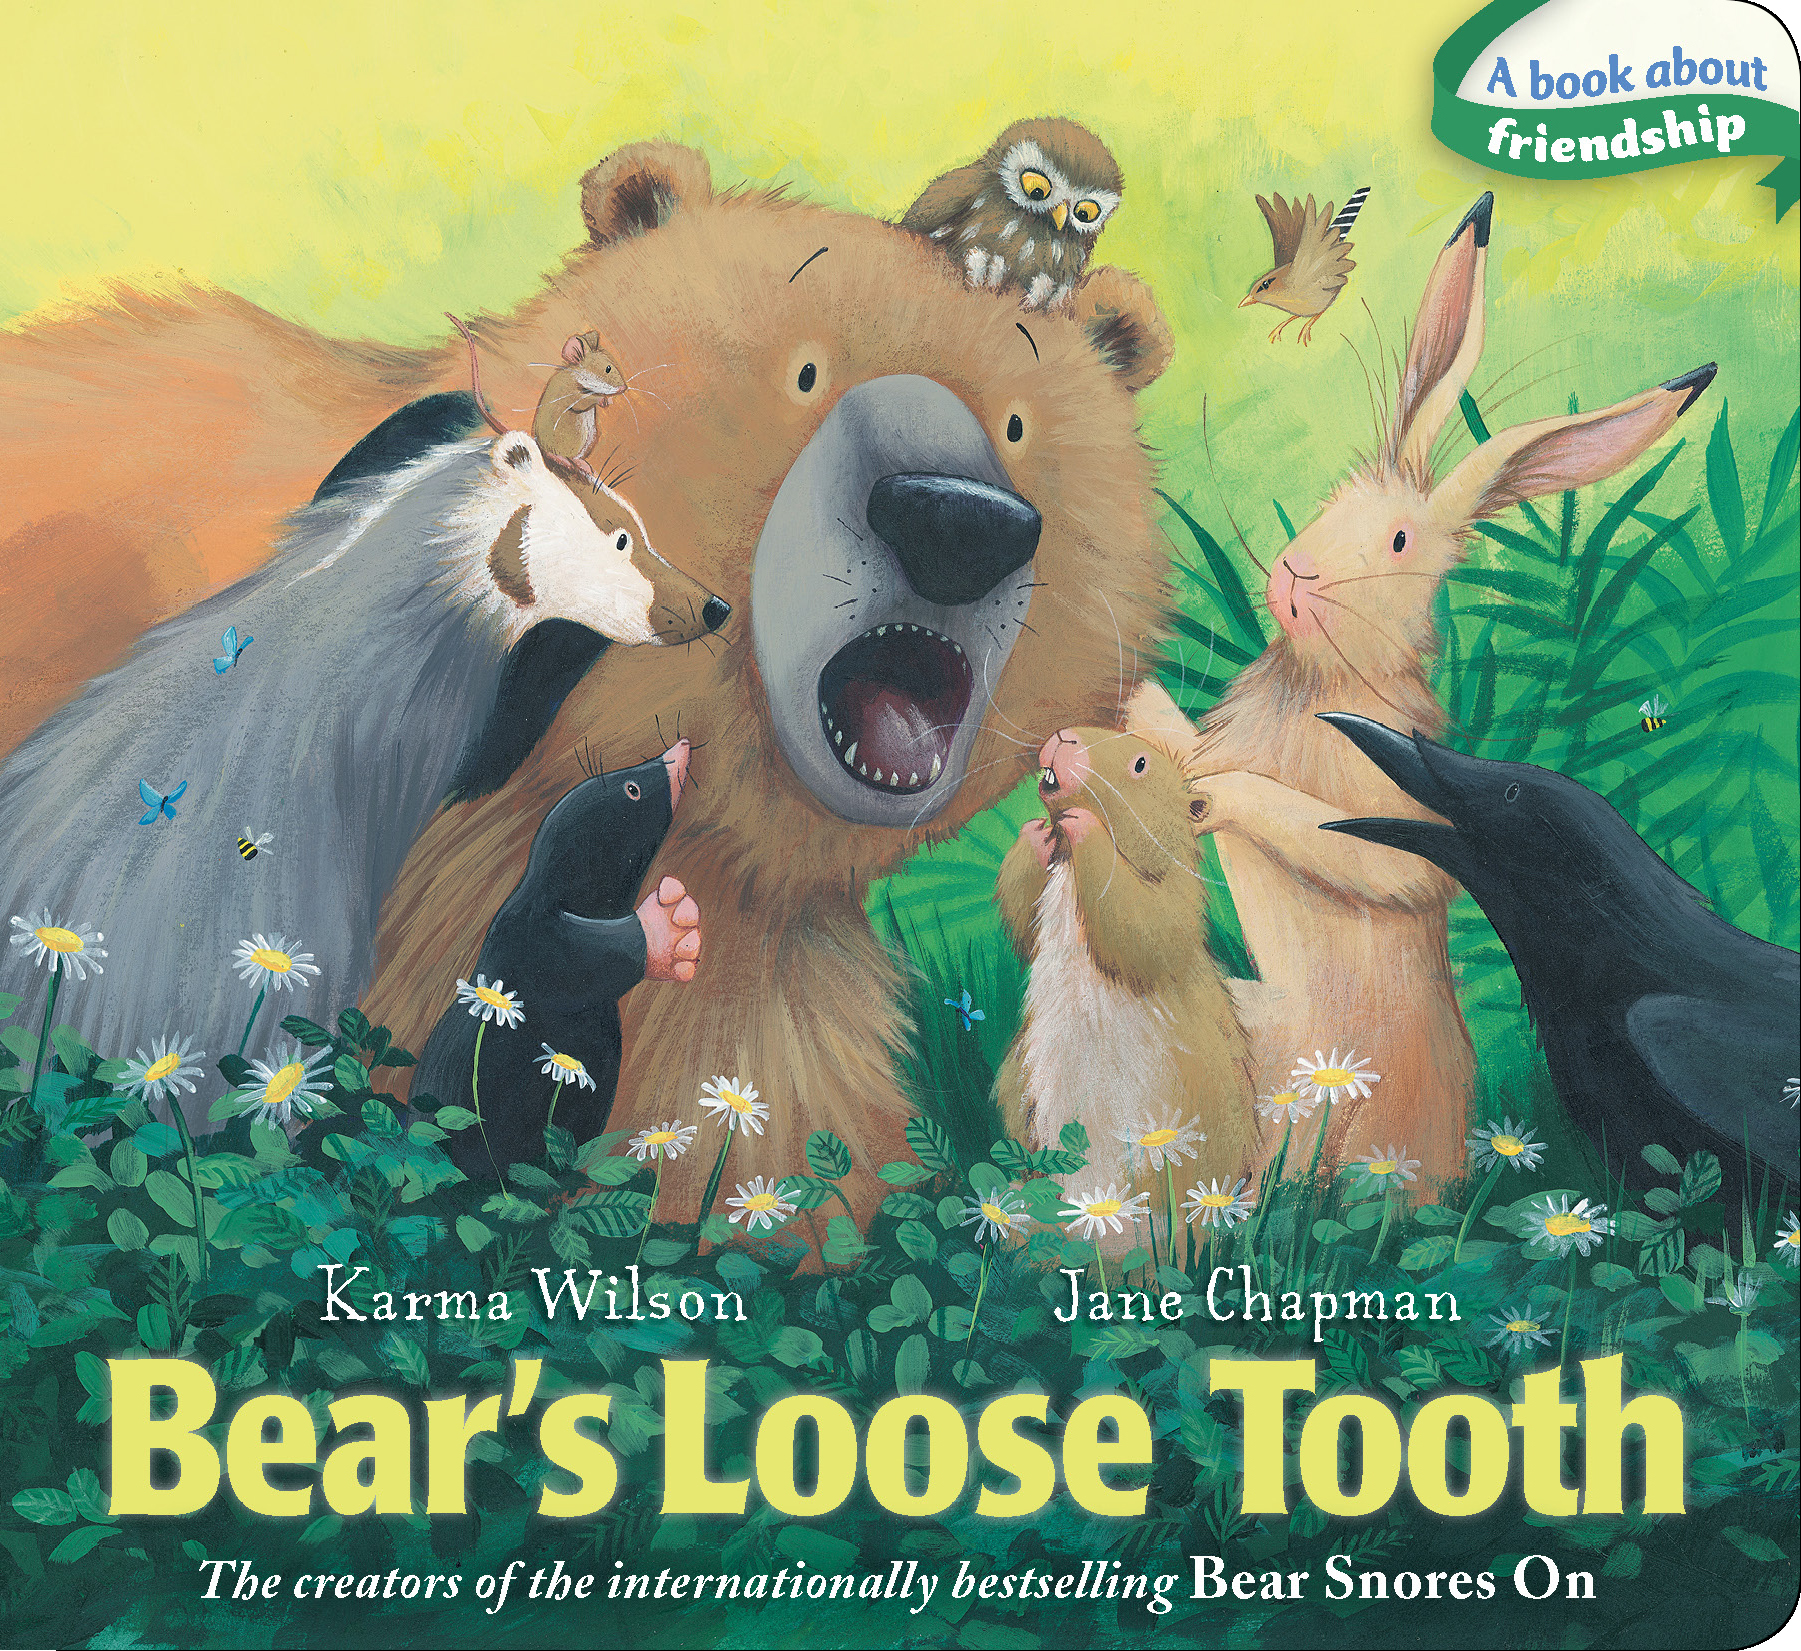 Bears loose tooth 9781442489363 hr